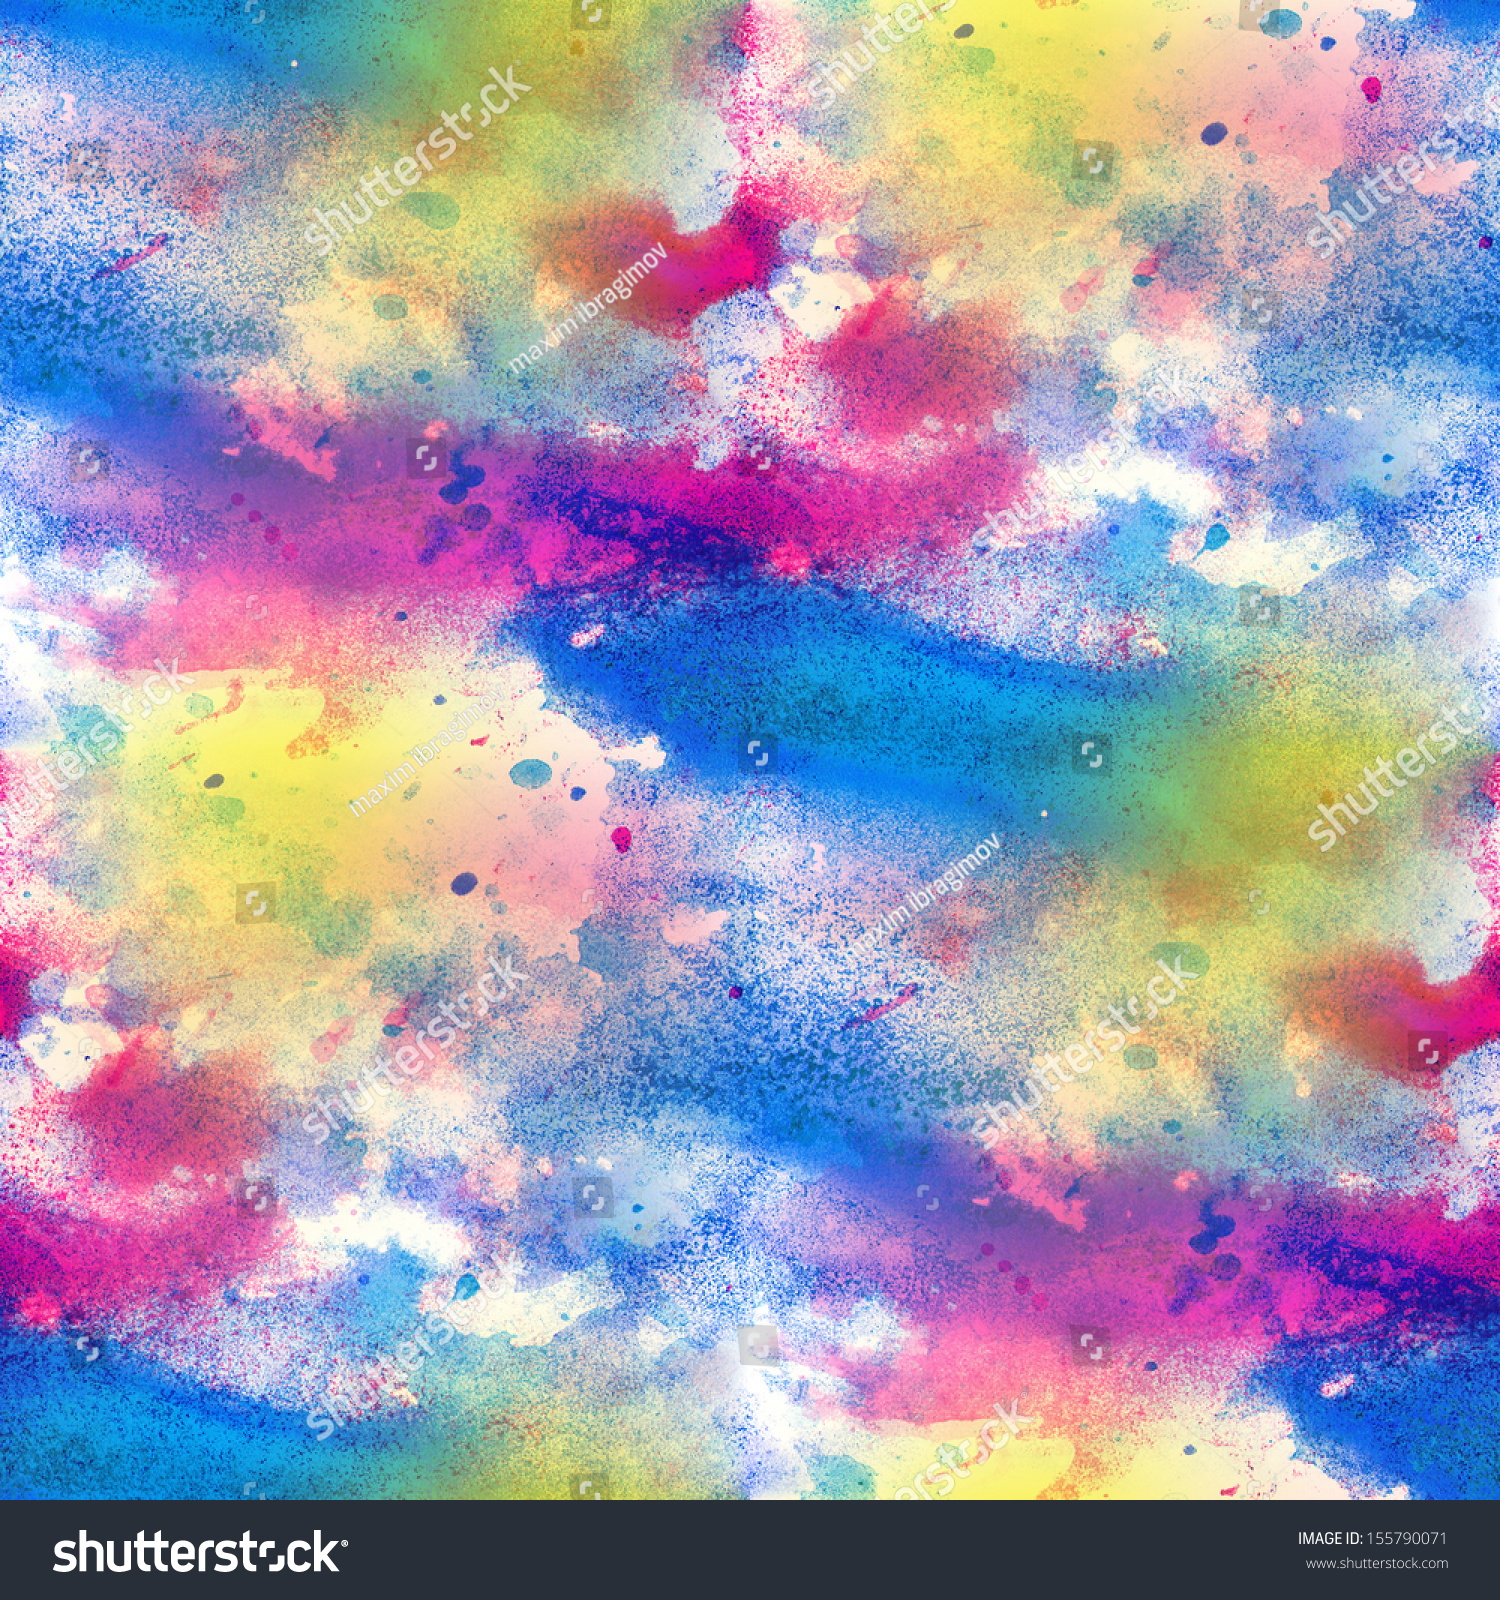 Artist Art Blue Red Watercolor Background Seamless Paint